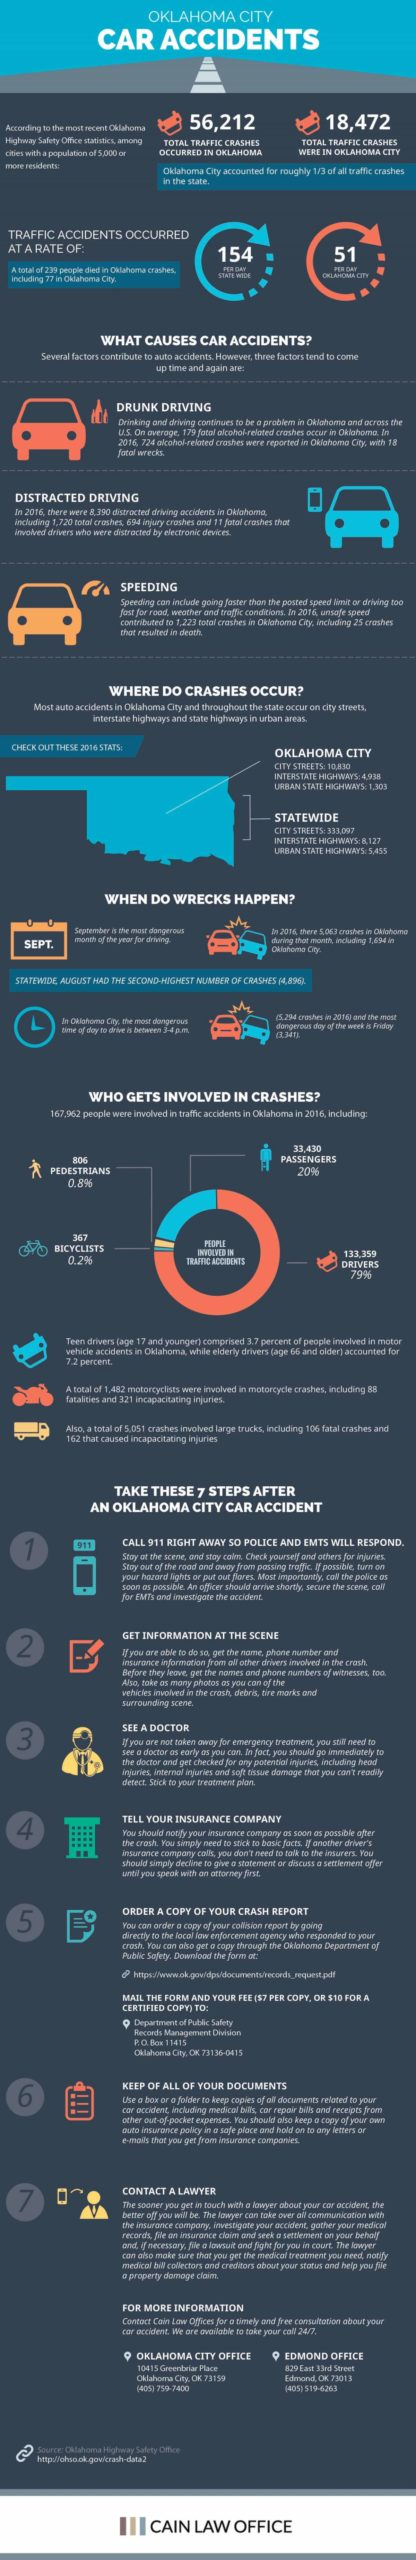 Top-Reasons-Why-Drivers-Involve-In-A-Car-Collision